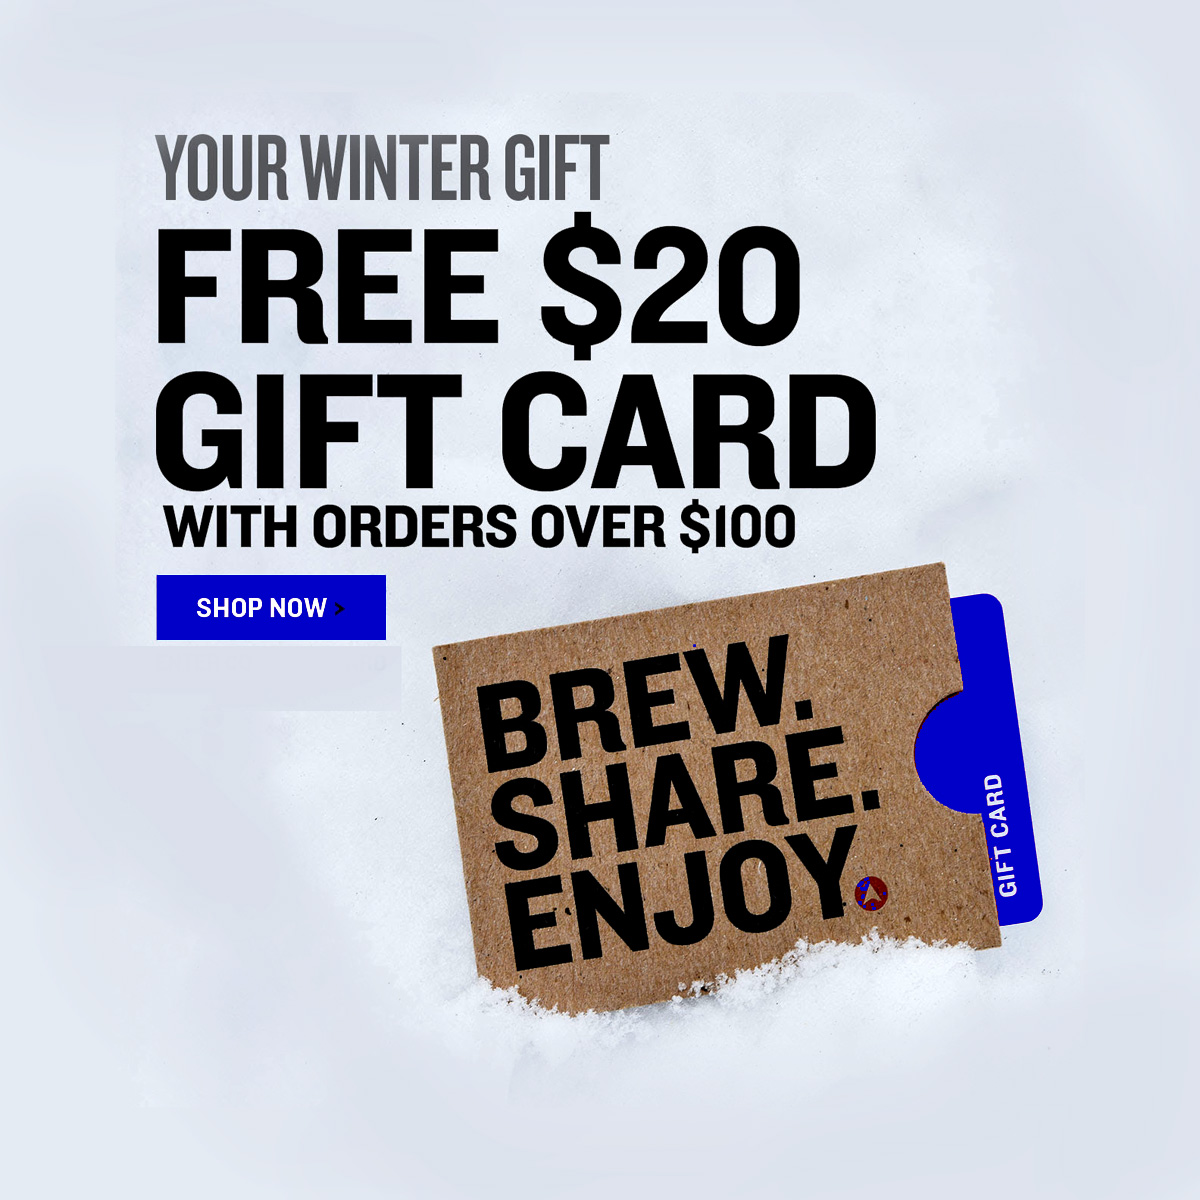 Home Wine Making Coupon Codes for Get a FREE $20 NorthernBrewer.com Giftcard with this Northern Brewer promo code Coupon Code